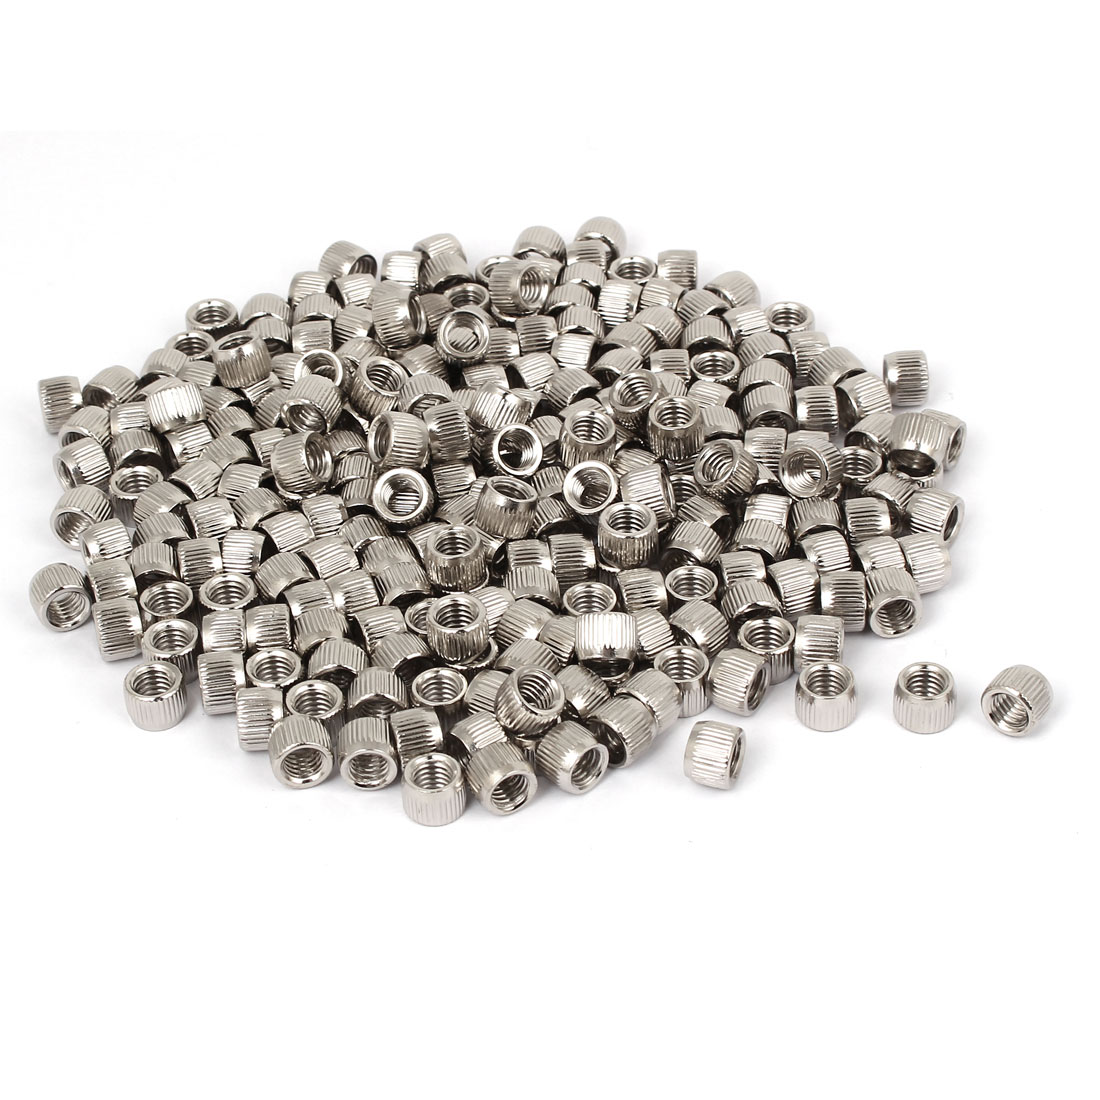 5mm Female Thread Cone Shaped Metal Conical Nut Fasterner 500pcs